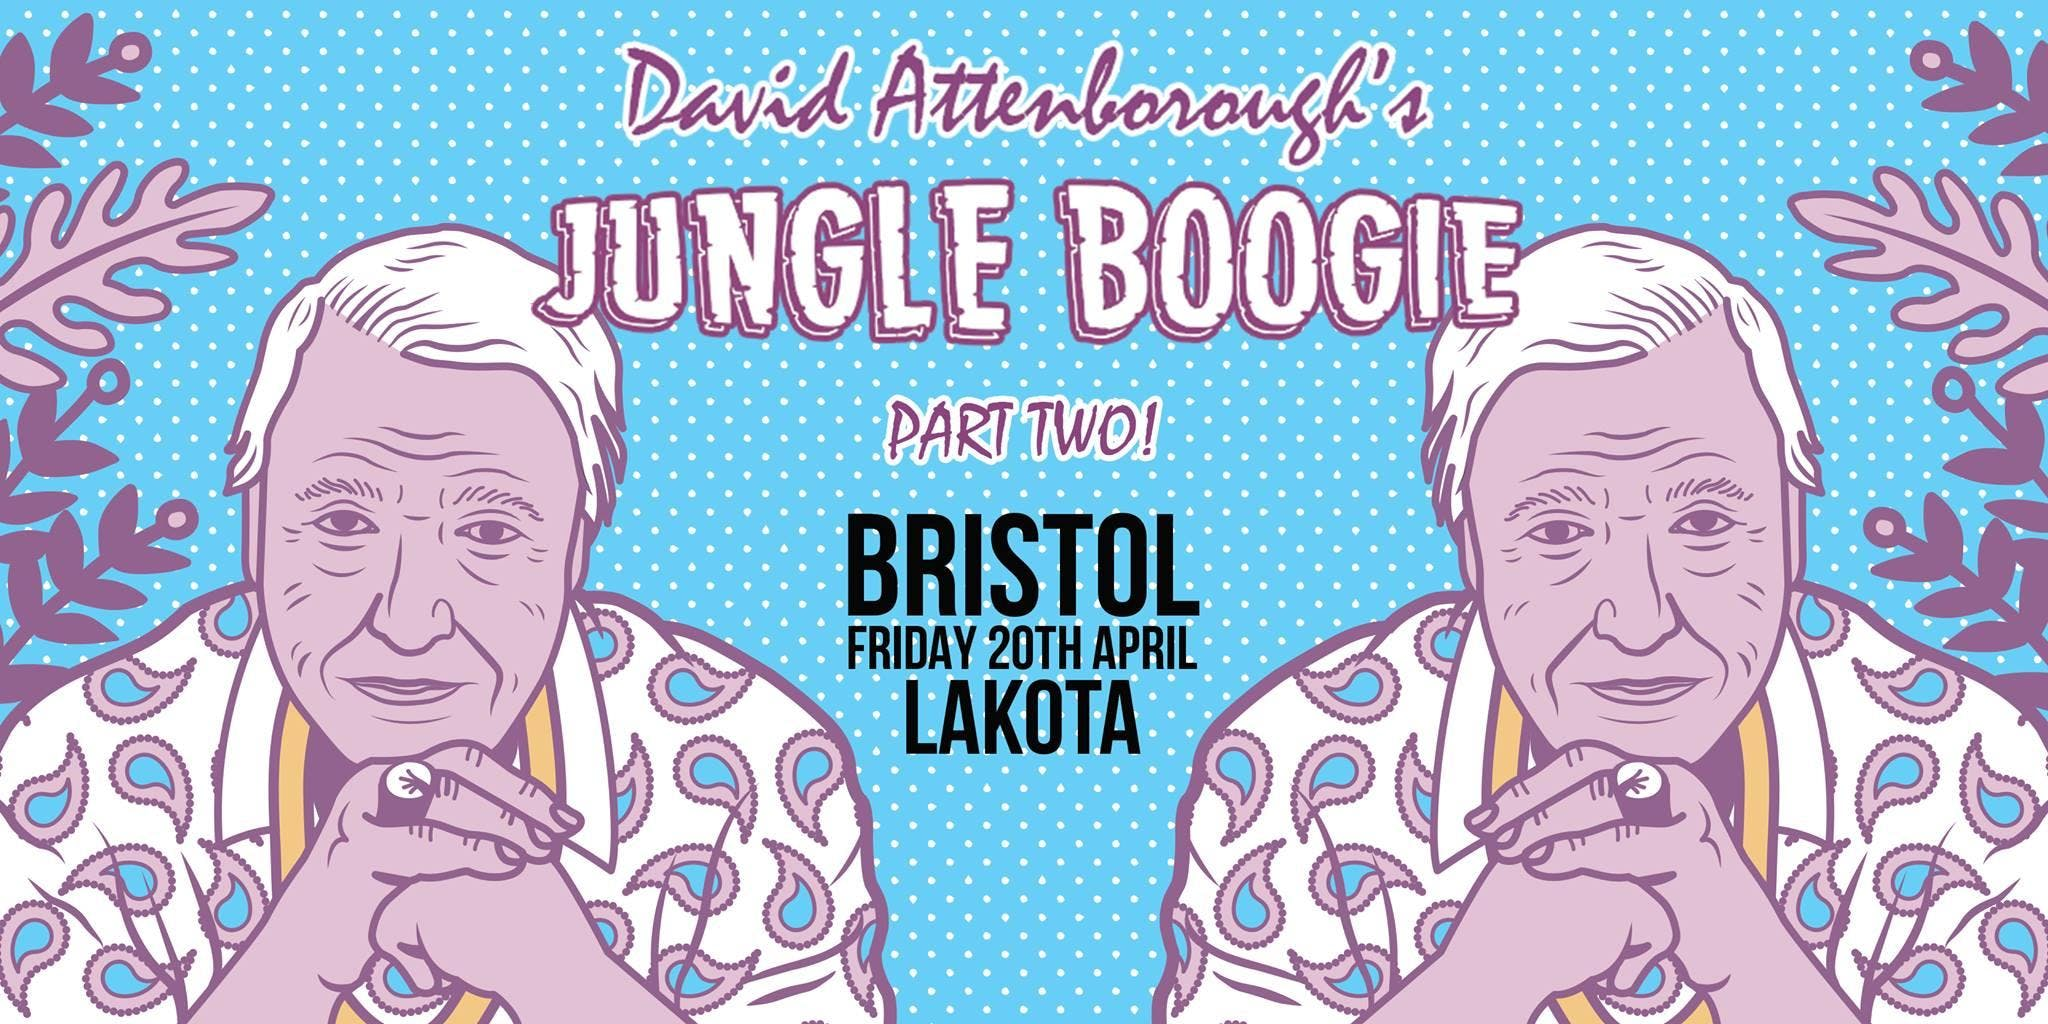 David Attenborough's Jungle Boogie - Bristol